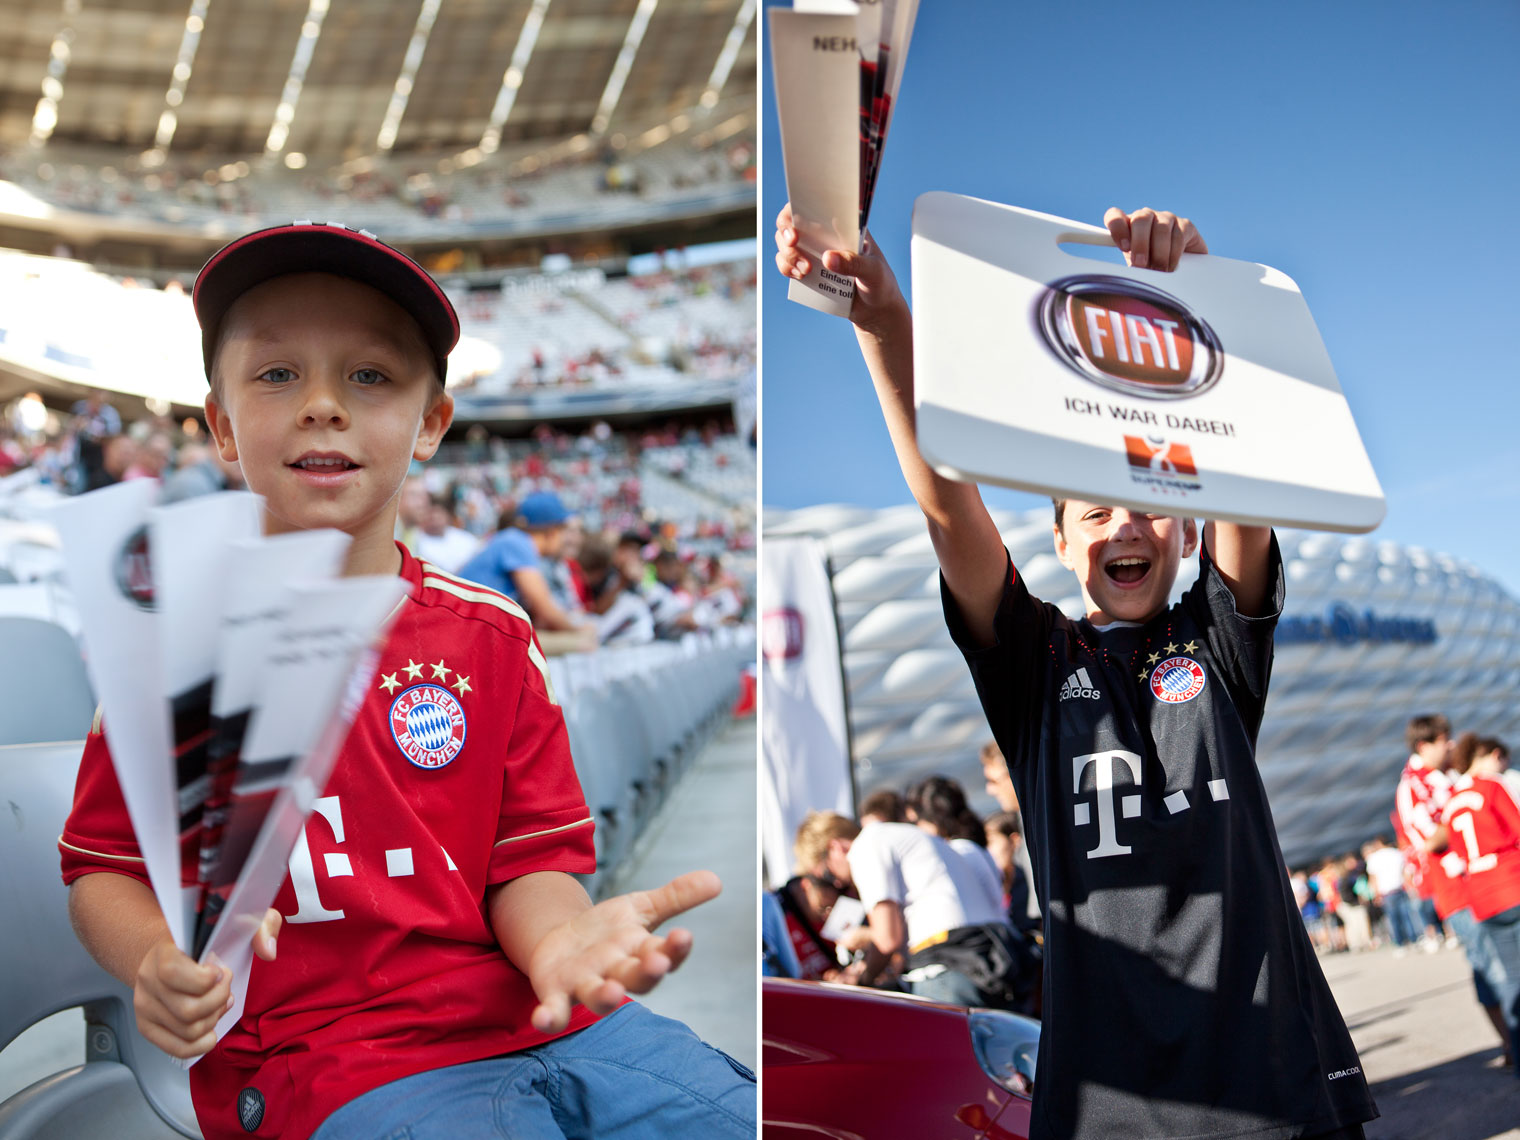 Fiat_Supercup_Allianz_Arena_01